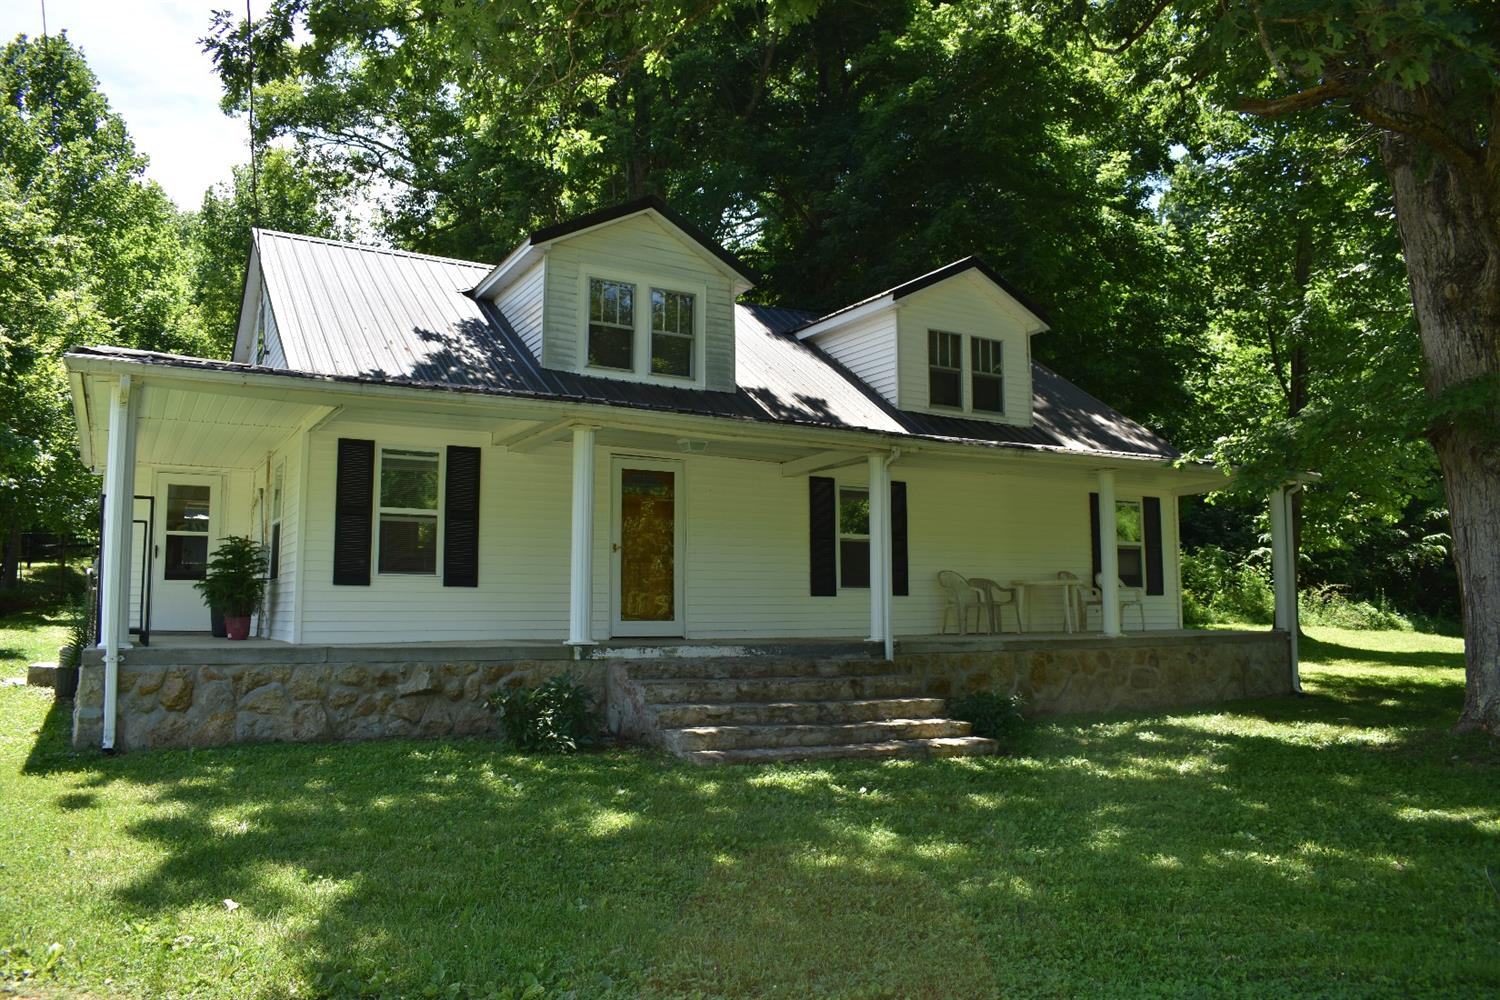 Look%20at%20this%20Beautiful%20secluded%20home%20that%20sits%20on%2057%20Acres%20just%20minutes%20from%20Danville!!%20This%20scenic%20property%20features%20a%20well%20kept%20farm%20house%20as%20well%20as%20a%20large%20barn%20with%20stalls%20for%20your%20animals.%20The%20land%20offers%20a%20variety%20of%20woods%20and%20pasture%20areas.%20Several%20large%20fenced%20paddocks%20with%20run%20in%20sheds,%20a%20natural%20spring%20in%20spring%20house,%20small%20green%20house%20structure%20and%20a%20creek%20that%20runs%20across%20the%20front%20of%20the%20property.%20Take%20a%20hike%20or%20your%20ATV%20up%20the%20trail%20to%20the%20top%20of%20the%20knob%20and%20see%20a%20large%20field%20currently%20being%20used%20for%20hay.%20Its%20a%20beautiful%20open%20field%20on%20the%20top%20with%20wonderful%20views.%20Would%20be%20a%20great%20recreation%20site...the%20possibilities%20are%20endless.